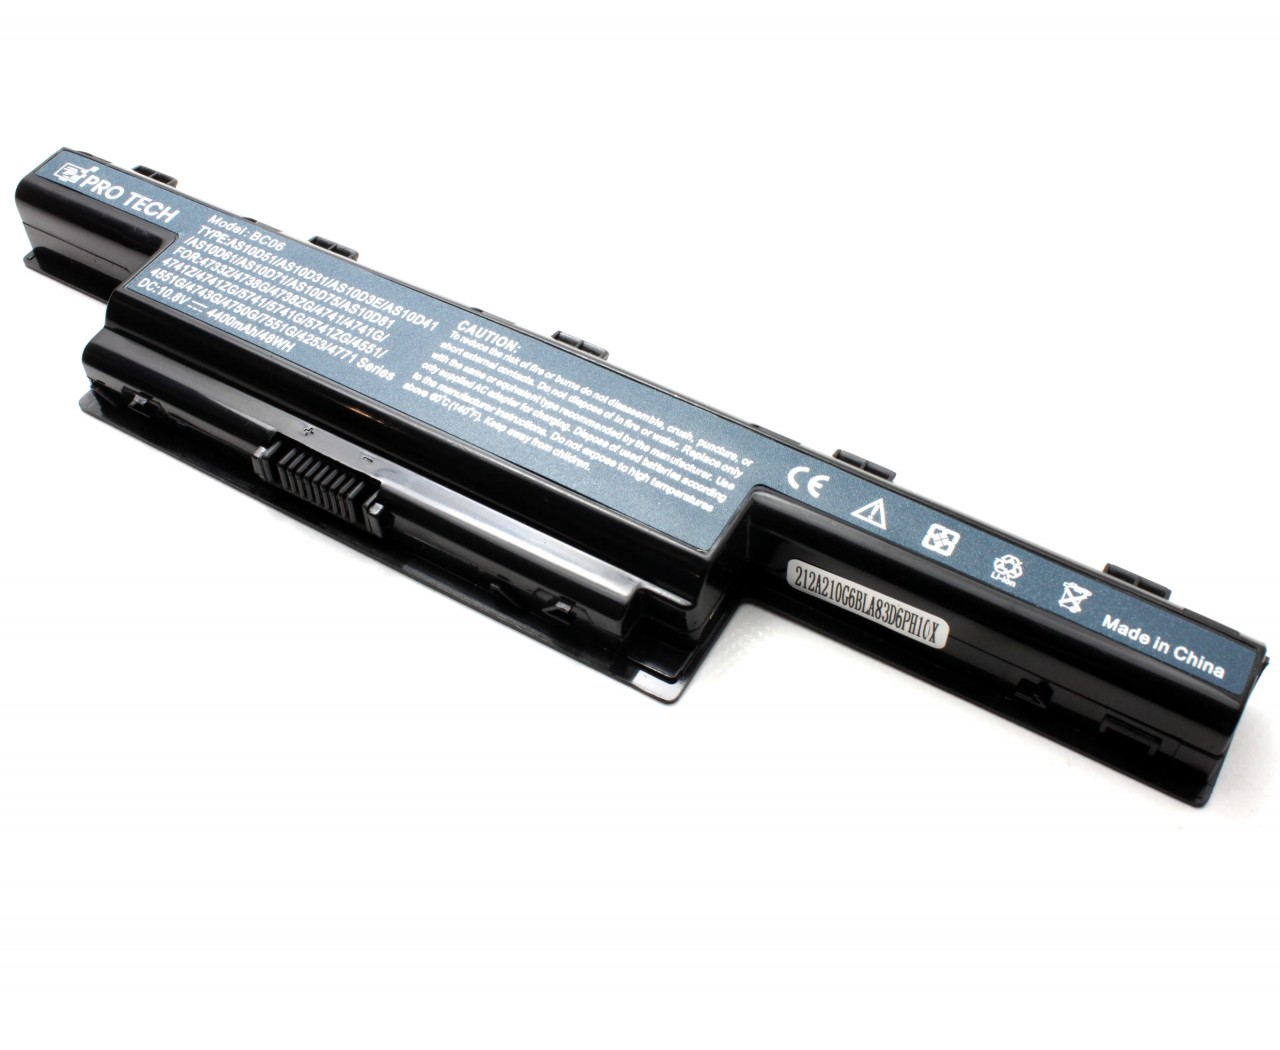 Baterie Packard Bell EasyNote TS13 6 celule imagine powerlaptop.ro 2021